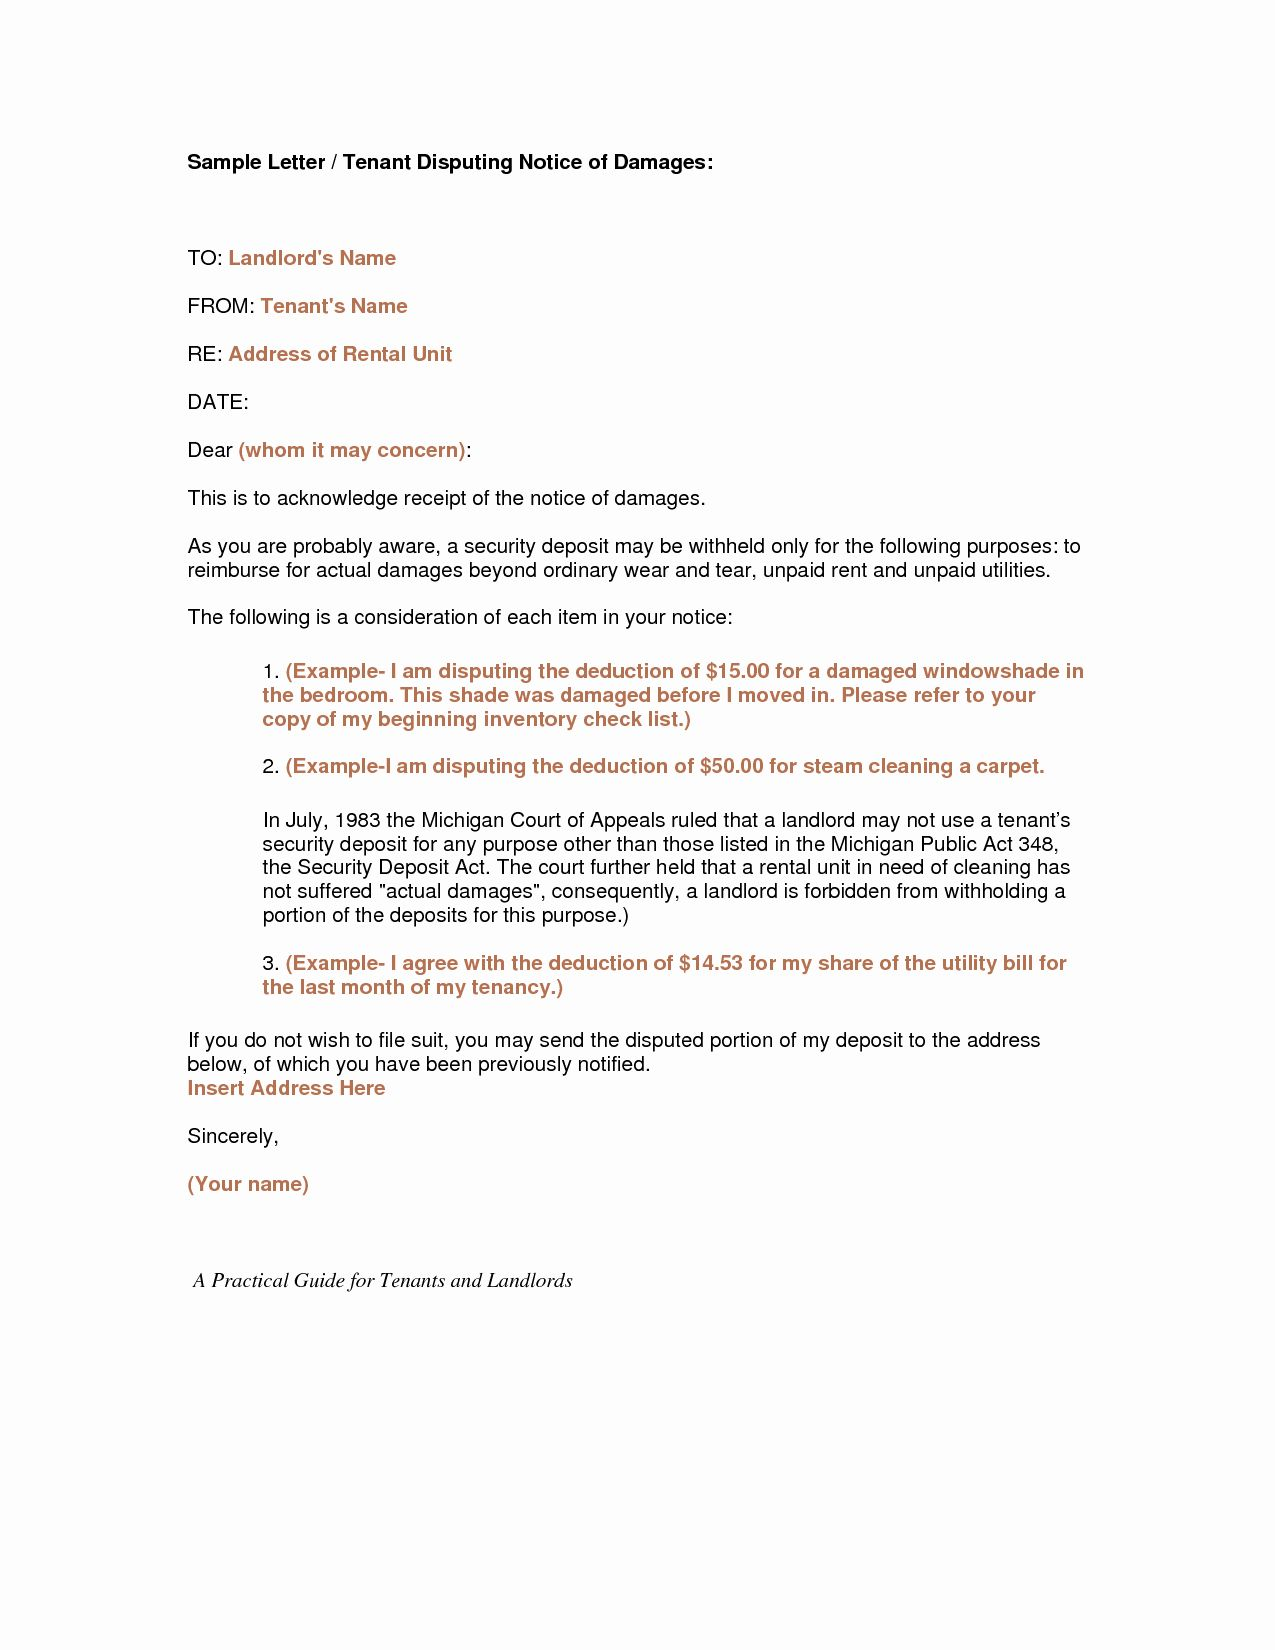 Sample Landlord Letters To Tenants Fresh Best S Of Tenant Notice Letter For Repairs Tenant Being A Landlord Lettering Letter Templates